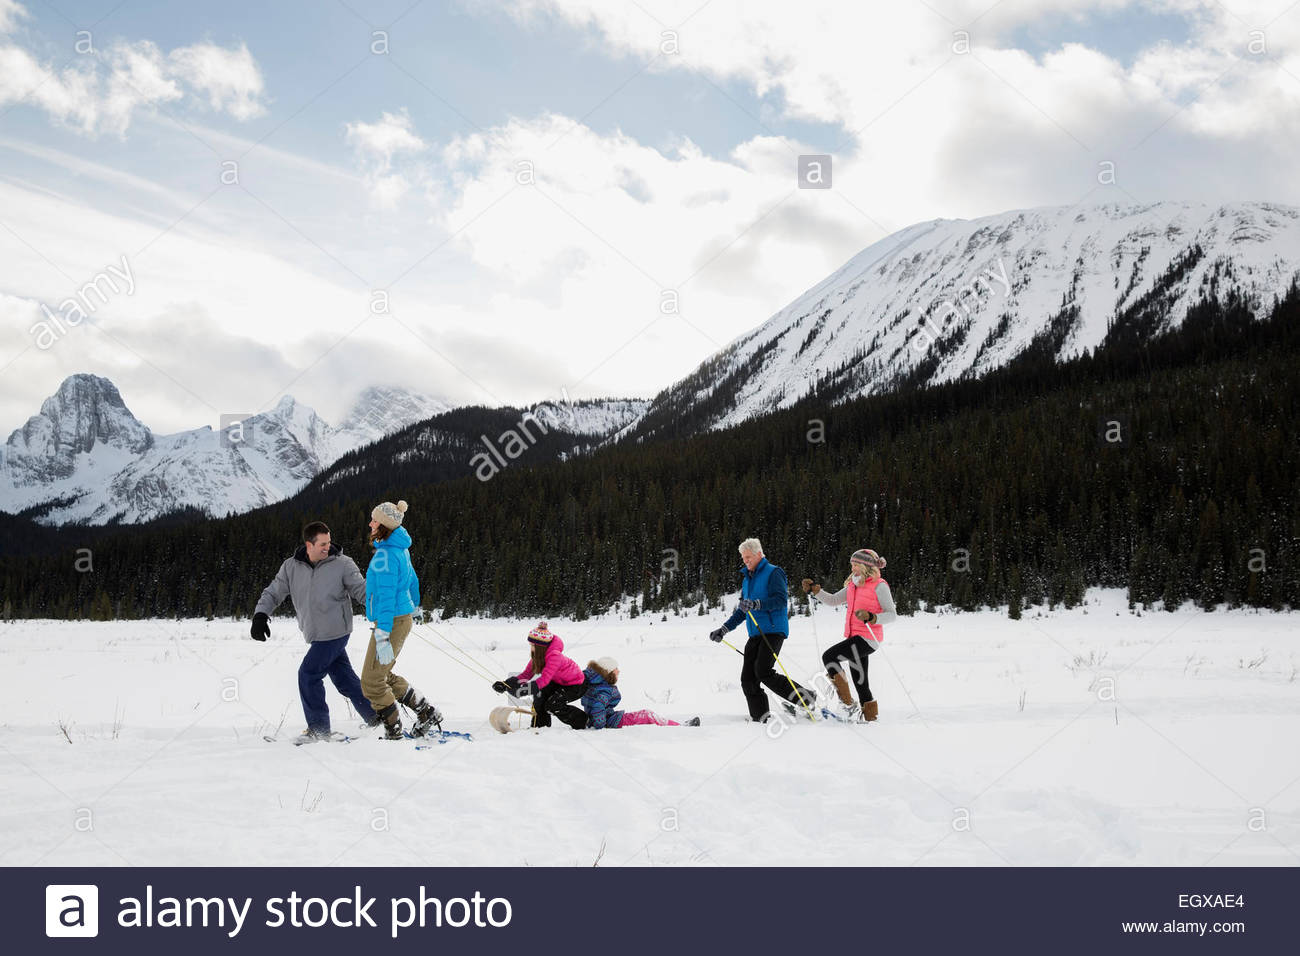 Multi-generation family sledding in field below mountains - Stock Image